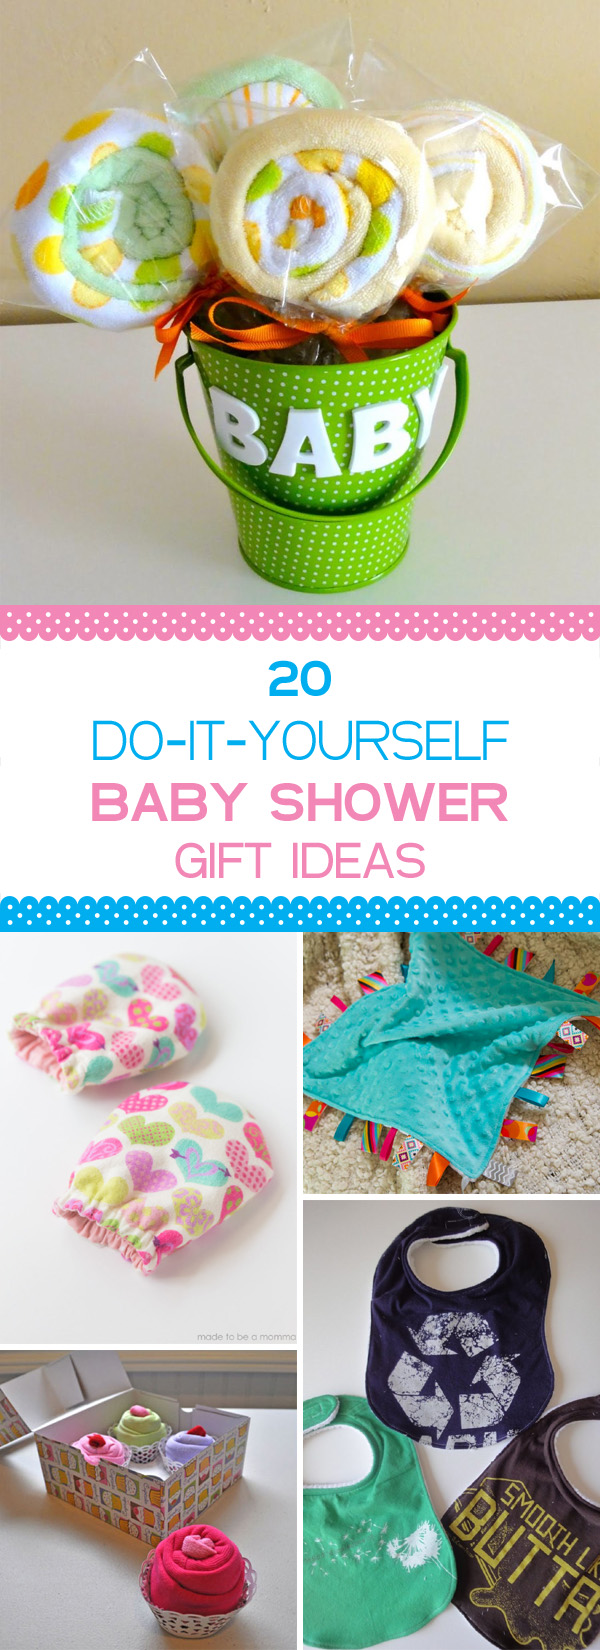 20 Unique and Creative DIY Baby Shower Gift Ideas